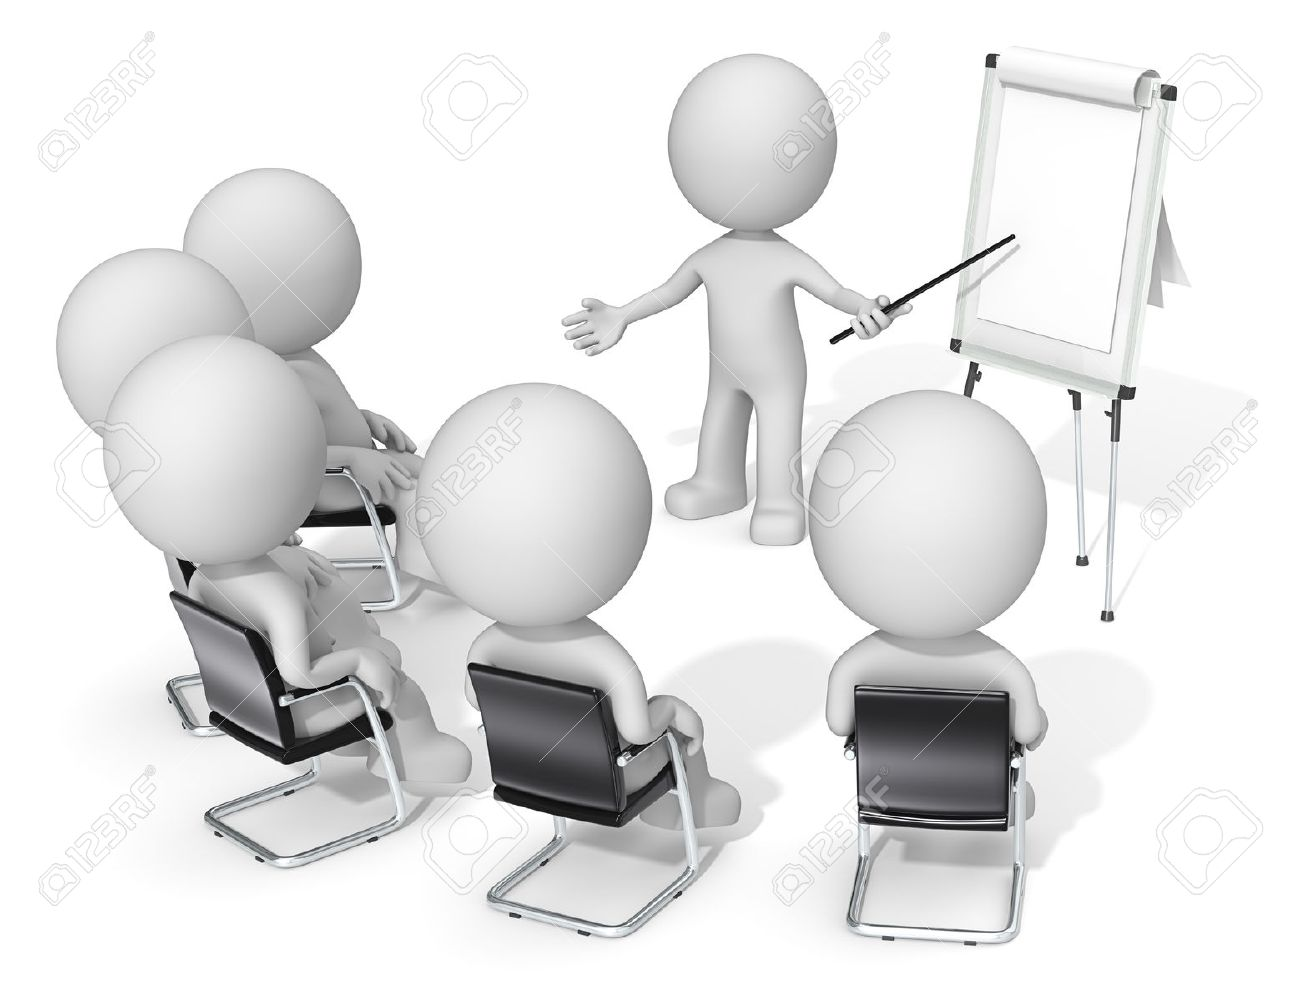 Workshop. Dude the Business people X 6 at meeting. Looking at blank flip chart. Copy space. - 43766415